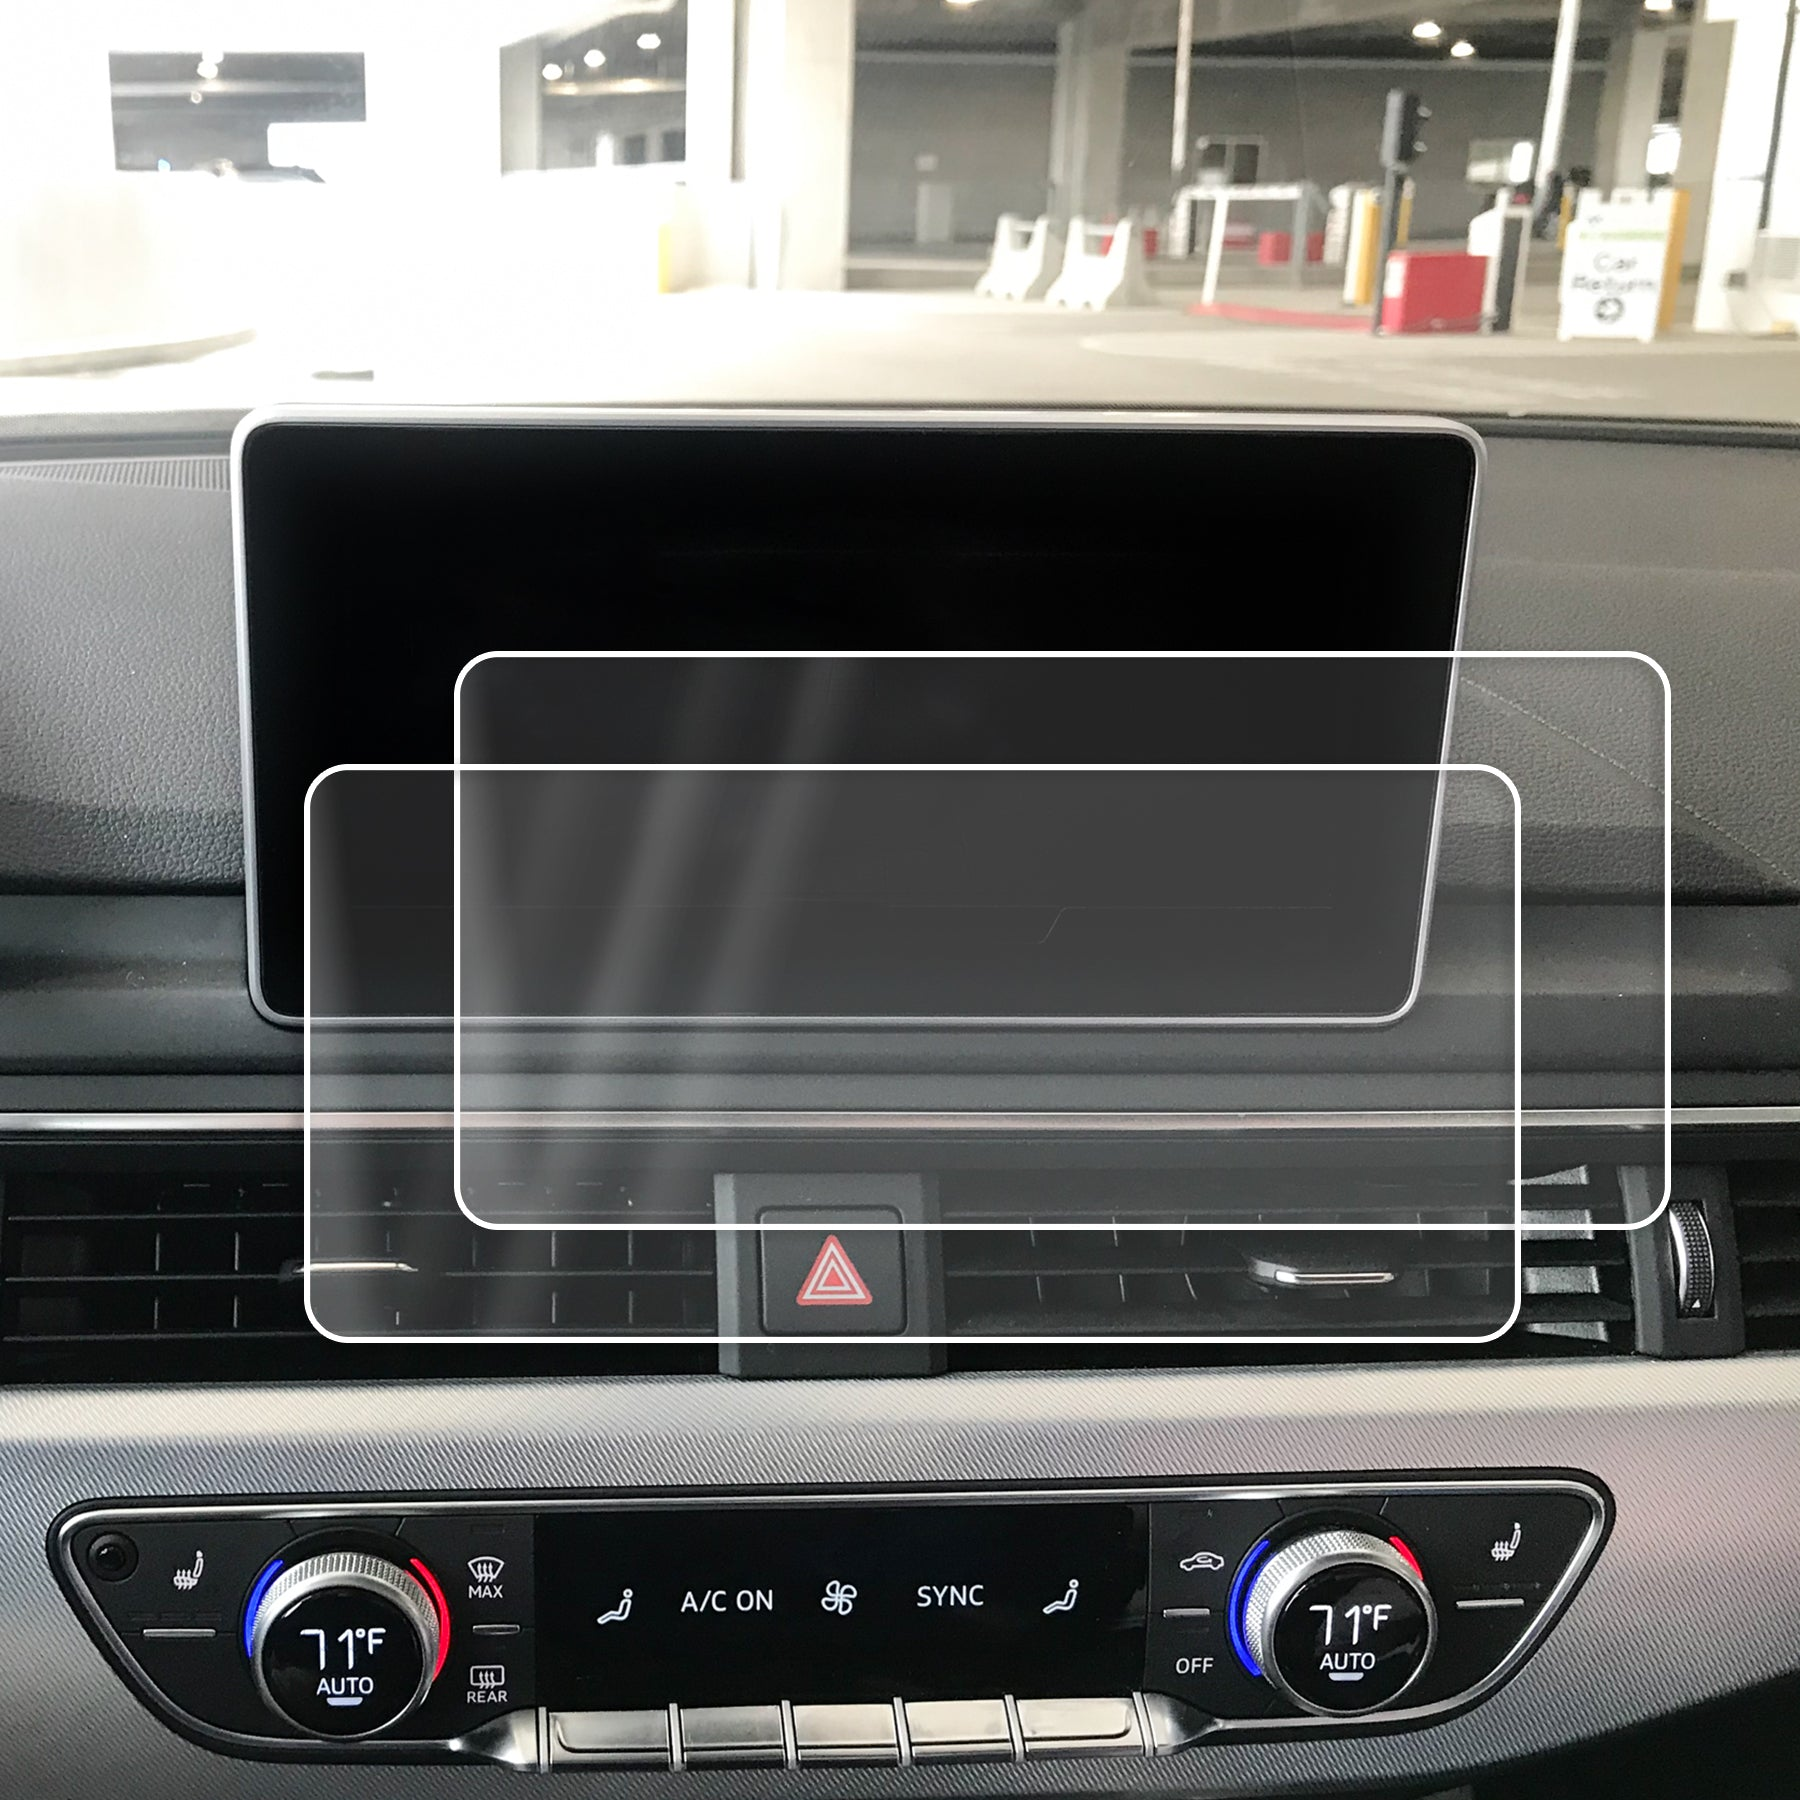 Red Hound Auto Screen Saver 2pc Compatible with Audi A4 2017-2019 mmI Invisible High Clarity Touch Display Protector Minimizes Fingerprints 8.3 Inch